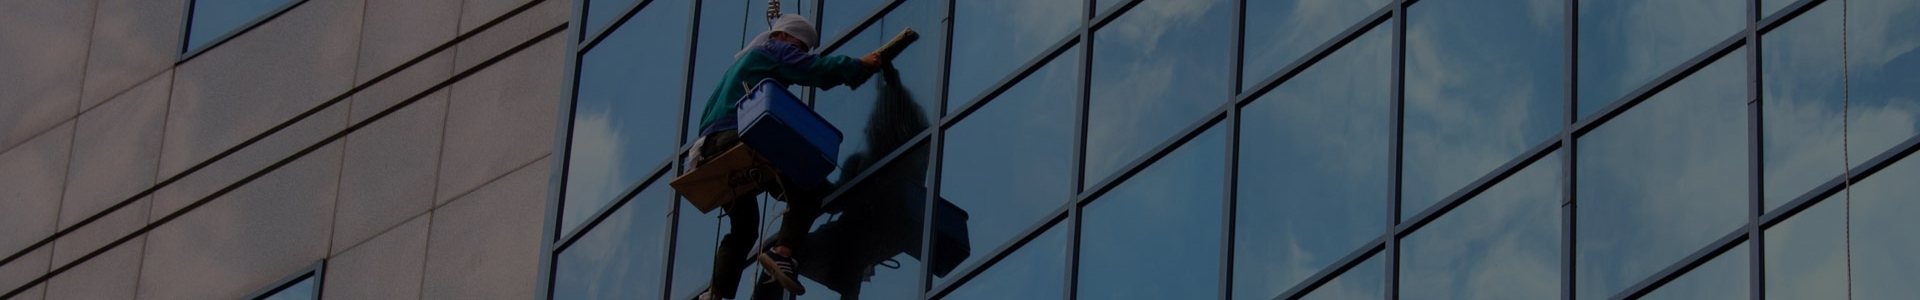 Window Cleaning Company in Fulham SW6 at your service